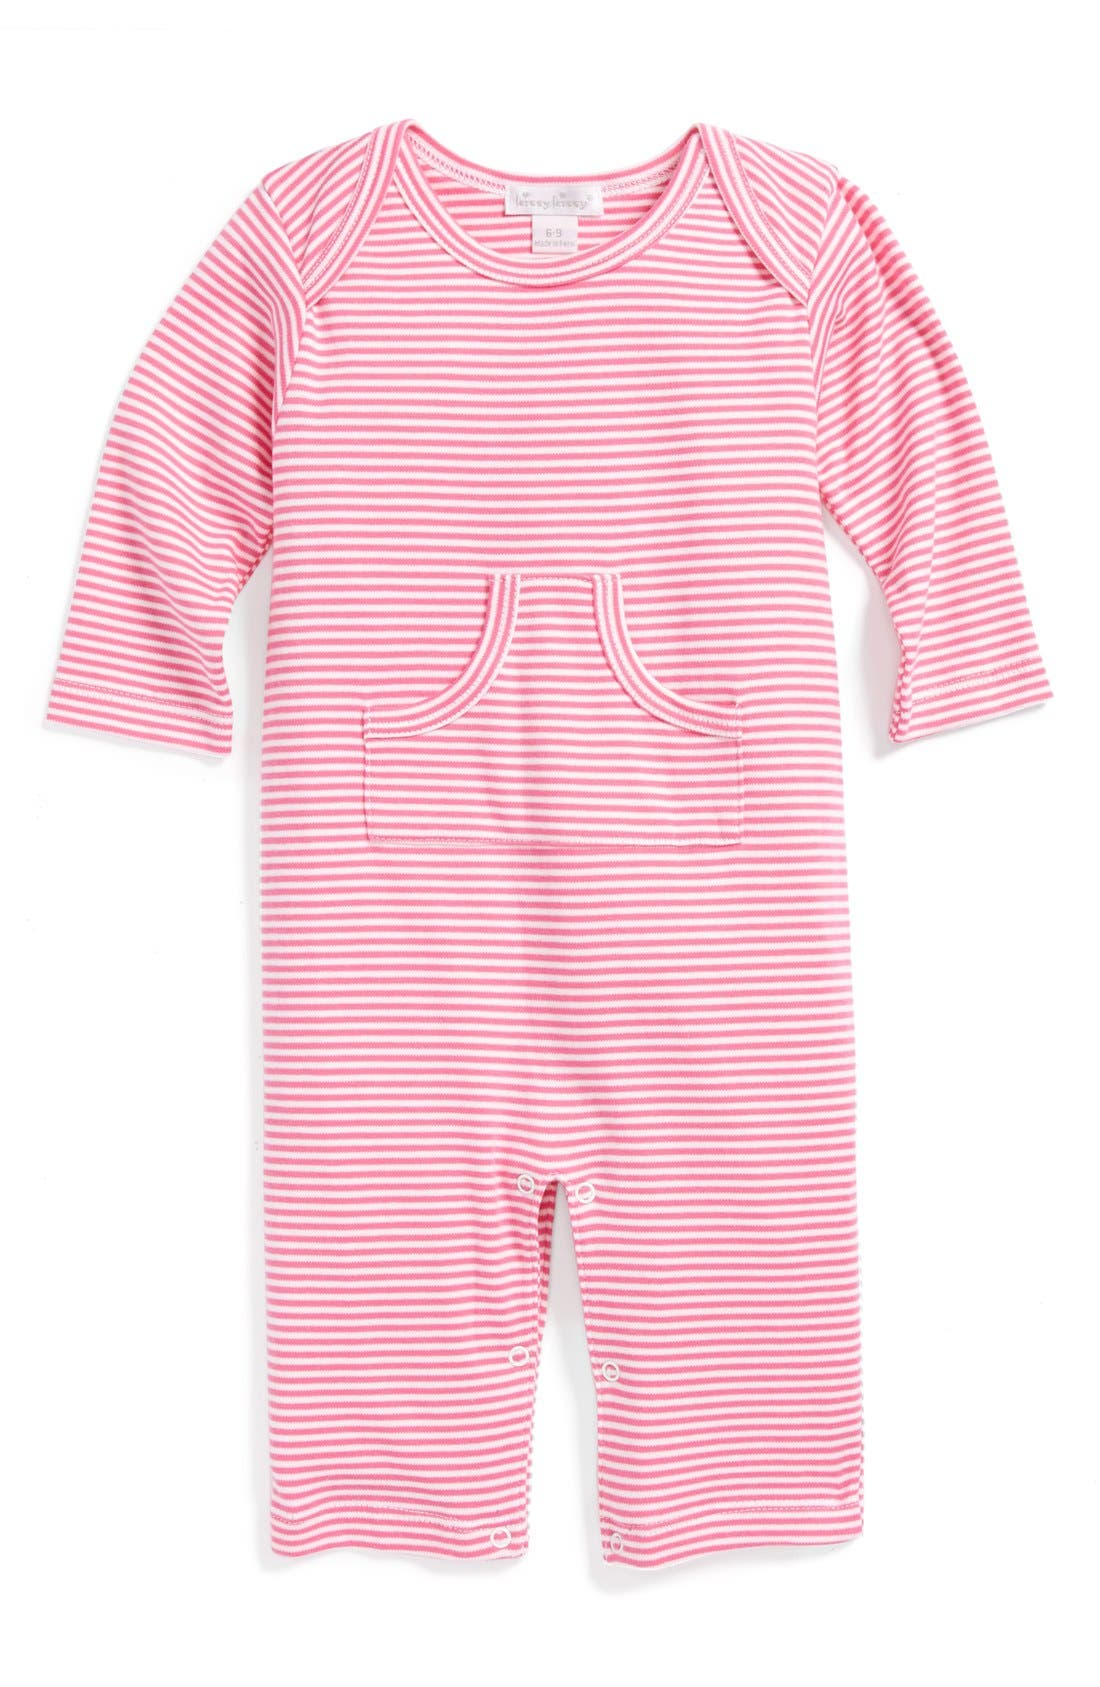 Alternate Image 1 Selected - Kissy Kissy Kangaroo Pocket Coveralls (Baby Girls)